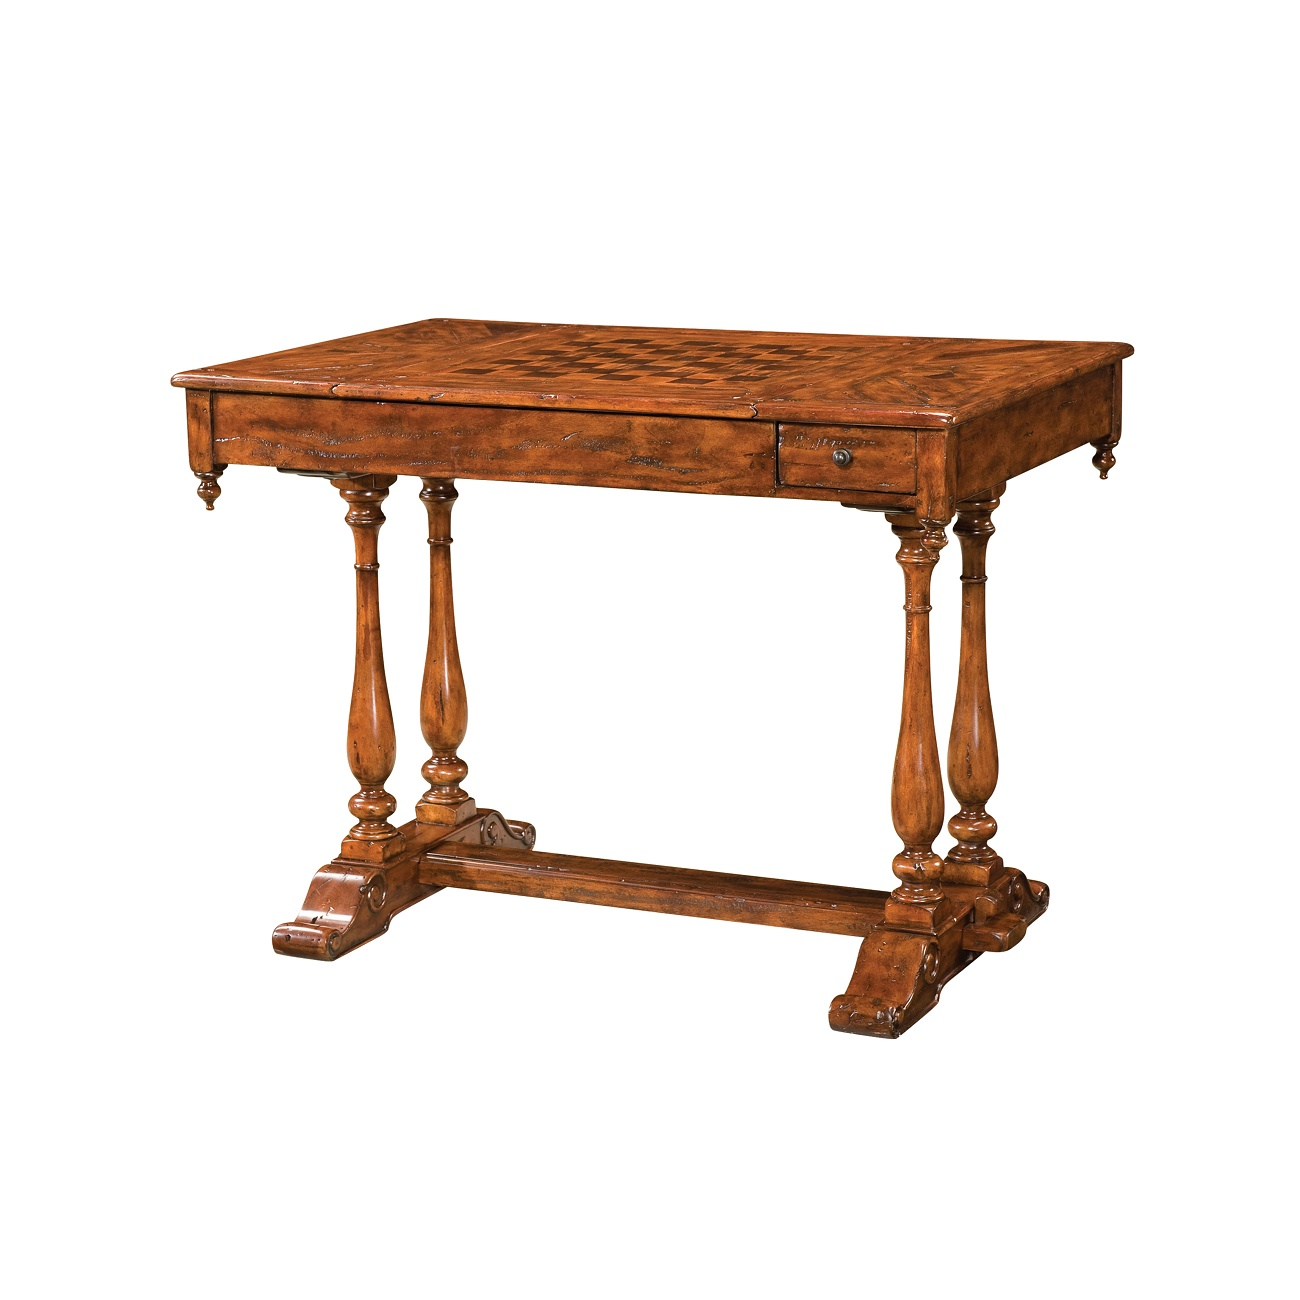 CB52001 Country Cottage Game Table Theodore Alexander